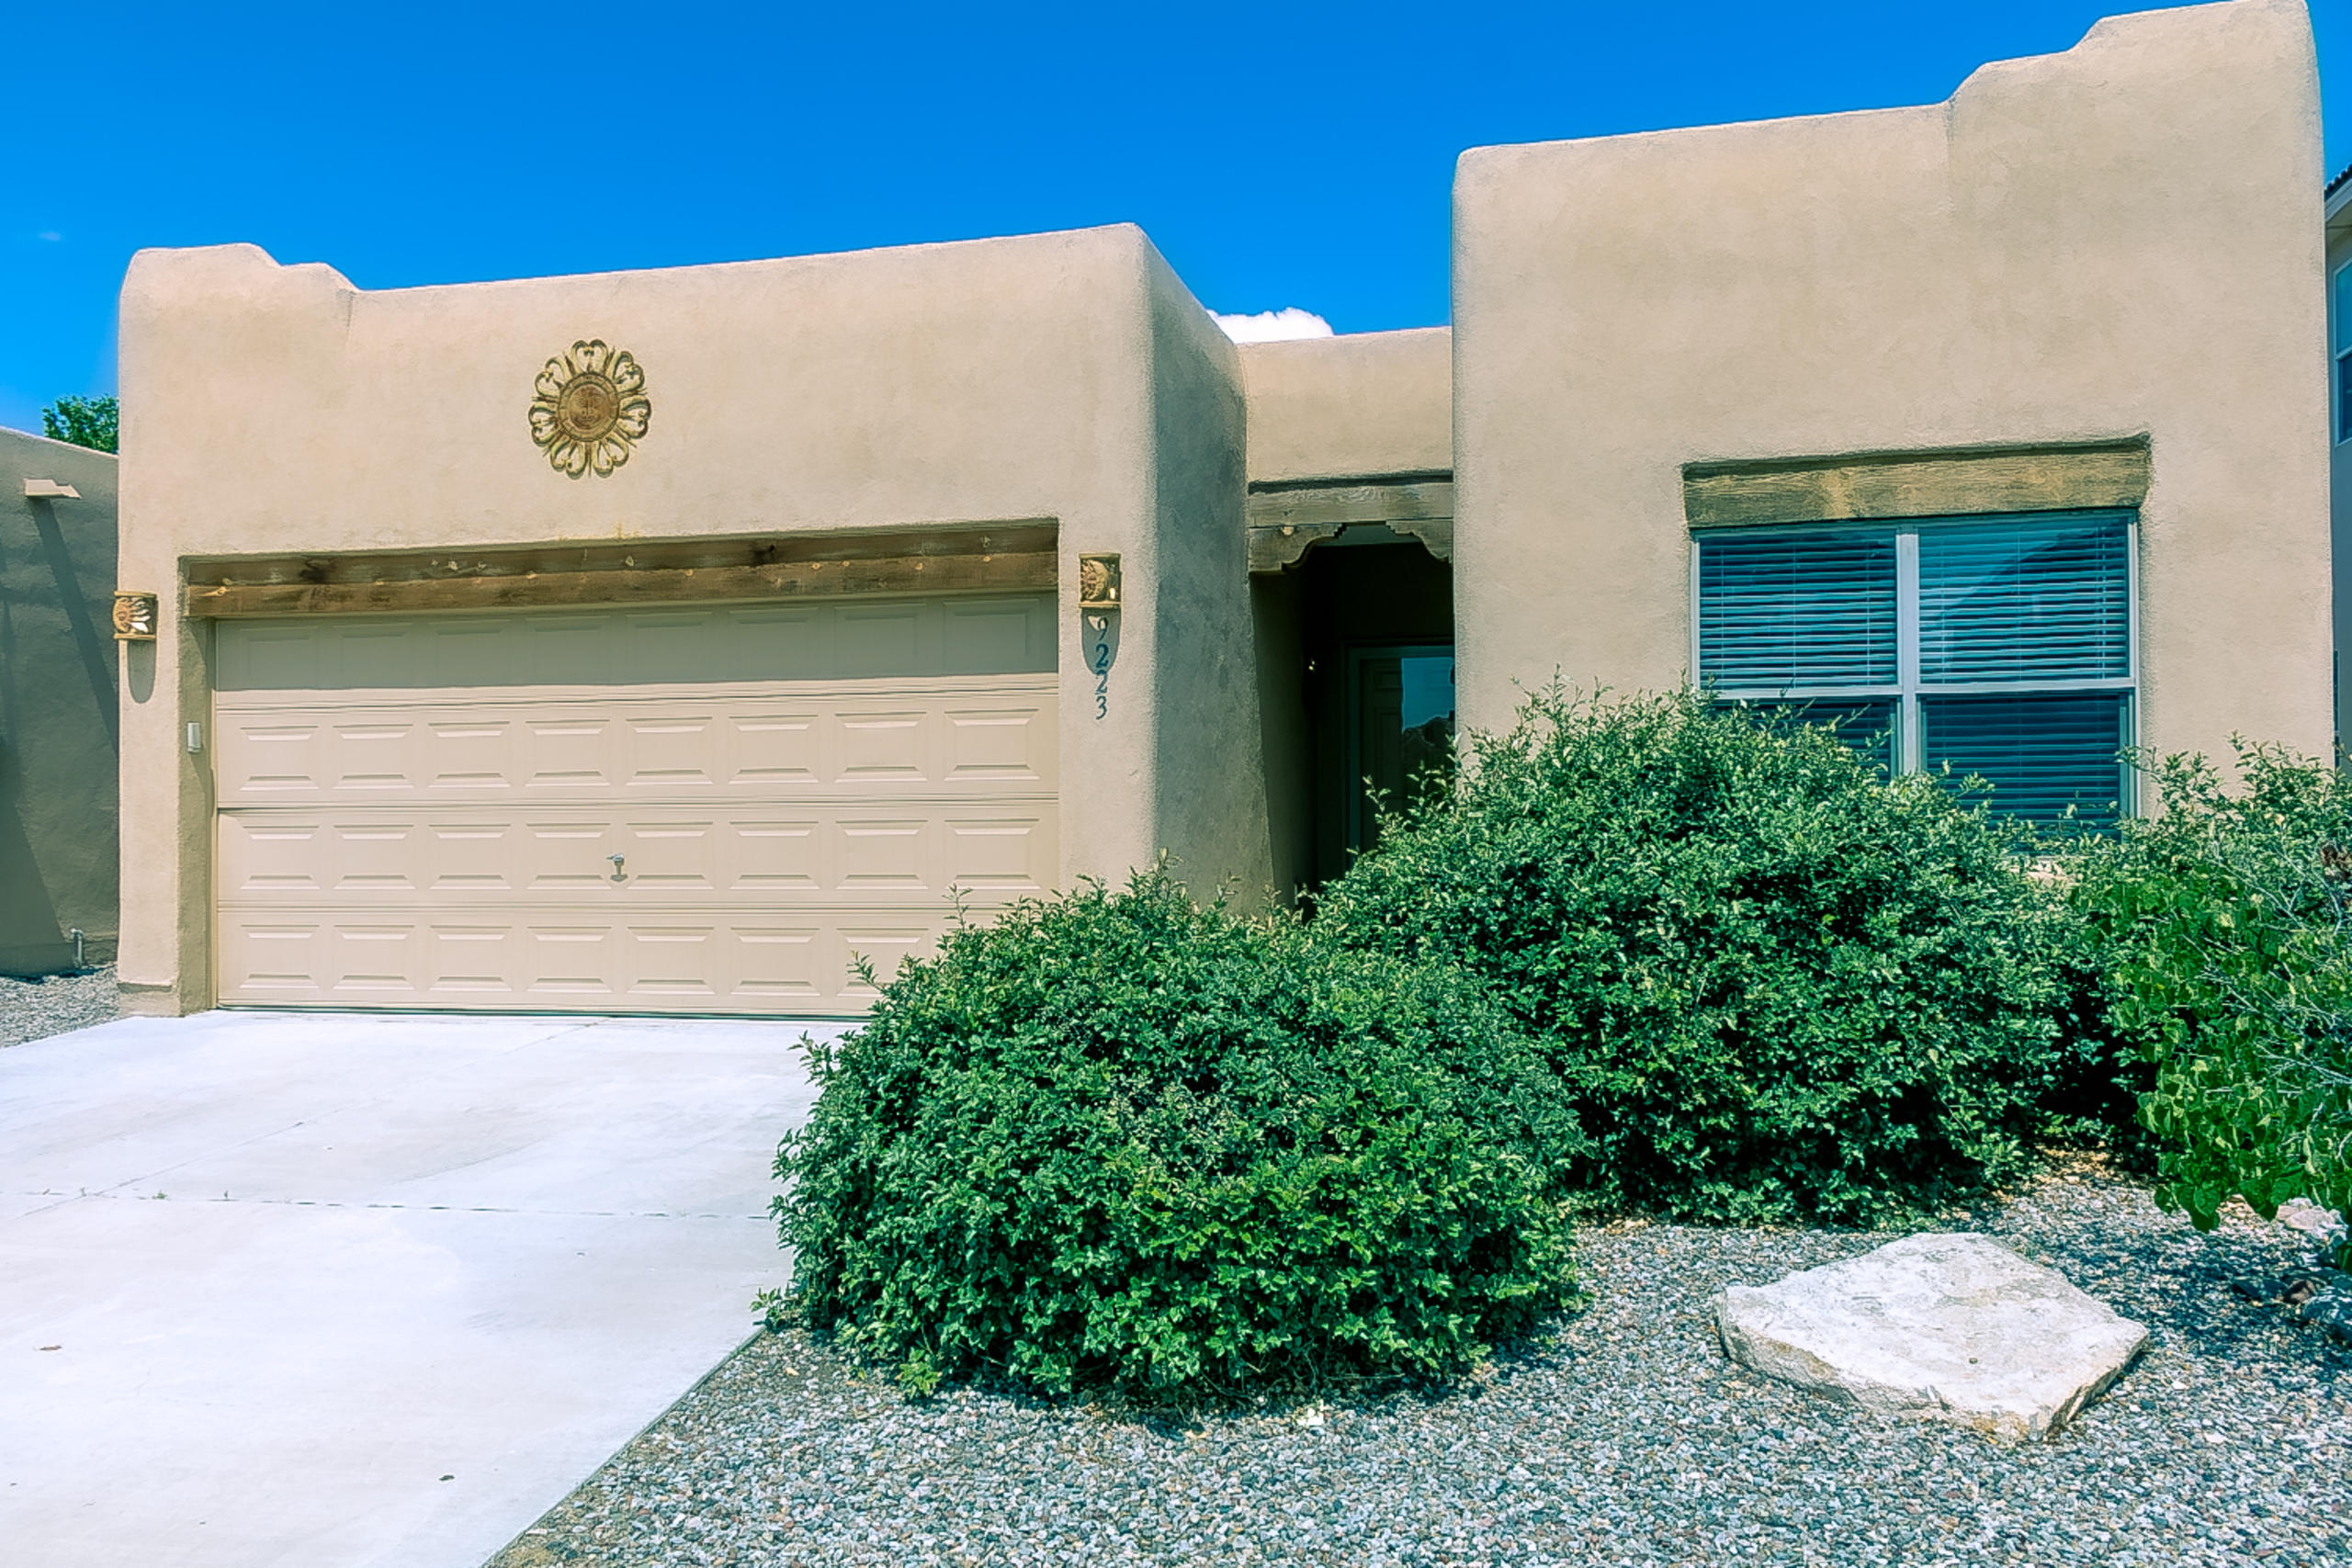 Convenient NW Albuquerque Location Ready for New Owners! This home features 3 bedrooms, 2 full bathrooms, 2 car garage & a open floor plan w/11' T&G ceilings in the main living area. Laminate floors in  great room & owners suite. Tile in all wet areas. New paint throughout . Kitchen features a island, breakfast bar, breakfast nook, pantry, oak cabinetry, built in microwave, gas range & refrigerator.  Large 17'X13' owners suite features a spacious walk-in closet, dbl sinks, walk-in shower w/dual shower heads & garden tub. Backyard includes brick pavers, lawn & raised wood deck for outdoor living space.  Additional features incl refrigerated Air Conditioning, vinyl dbl pane windows, carpet only in 2nd and 3rd bedrooms, ceiling fans throughout, custom gas log fireplace, Xeriscape front yard.